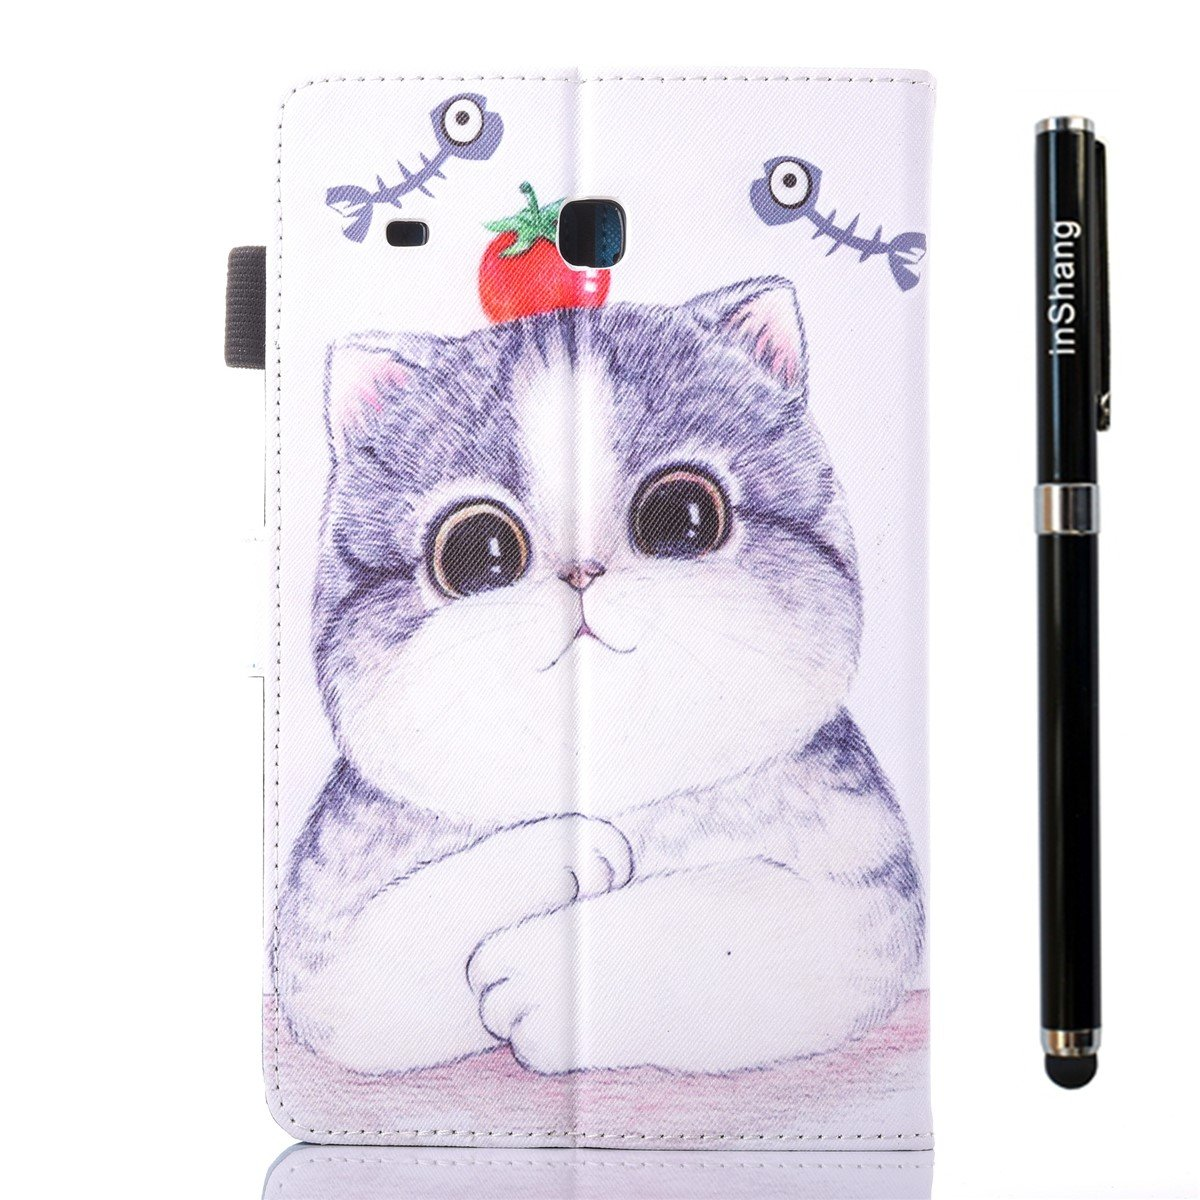 inShang T280 Case for Samsung Galaxy TAB A 7.0 inch T 280, with Color Painting Pattern, Stand Cover+1pc High end Class Business Stylus Pen